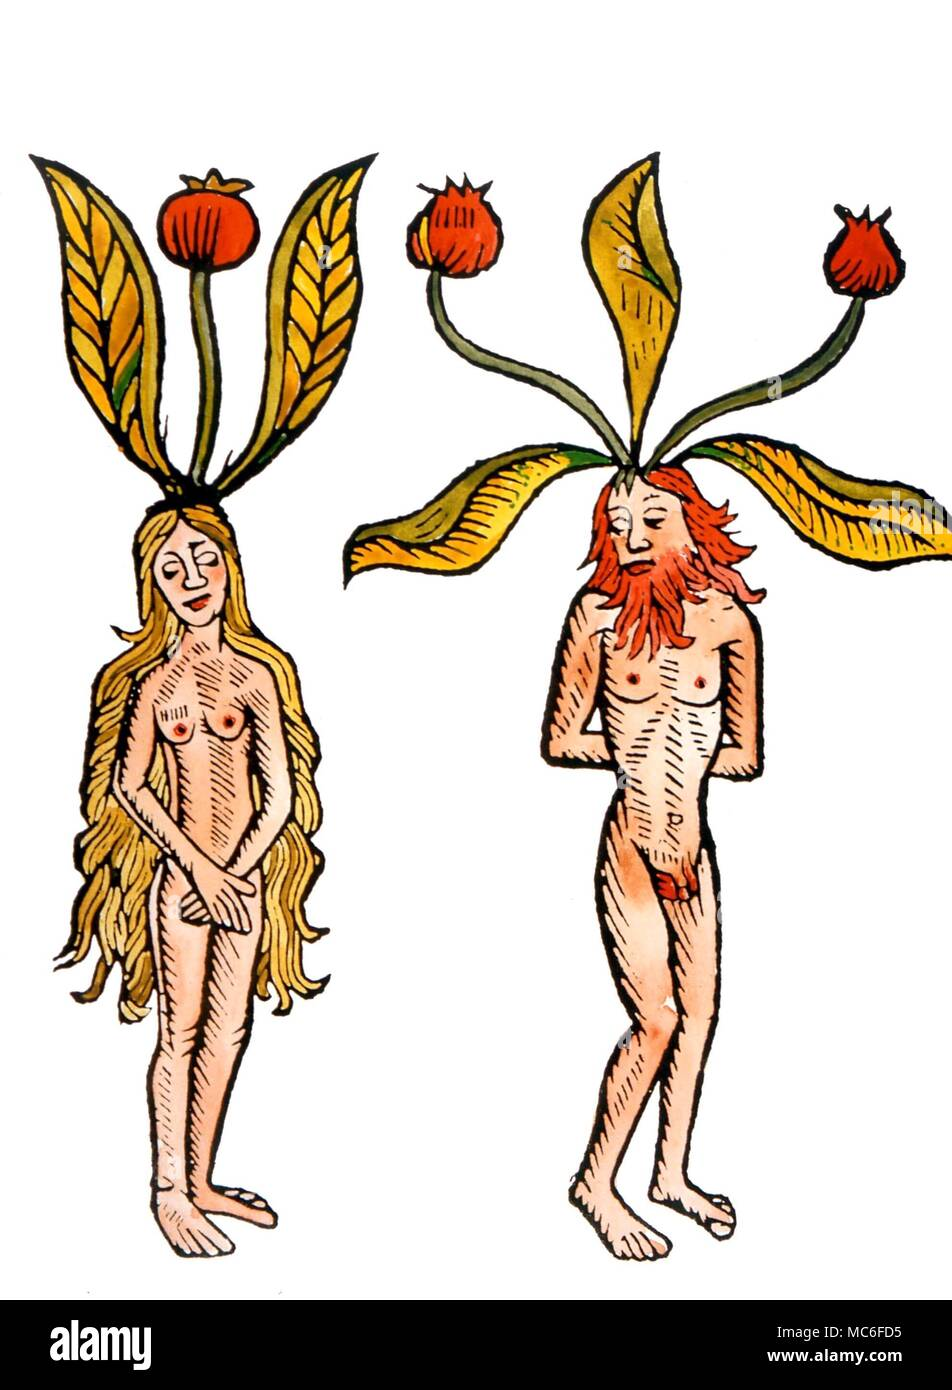 WITCHCRAFT - The mandagora or mandrake - humanoid plants which figured in many witchcraft recipes. After a 16th century print Stock Photo